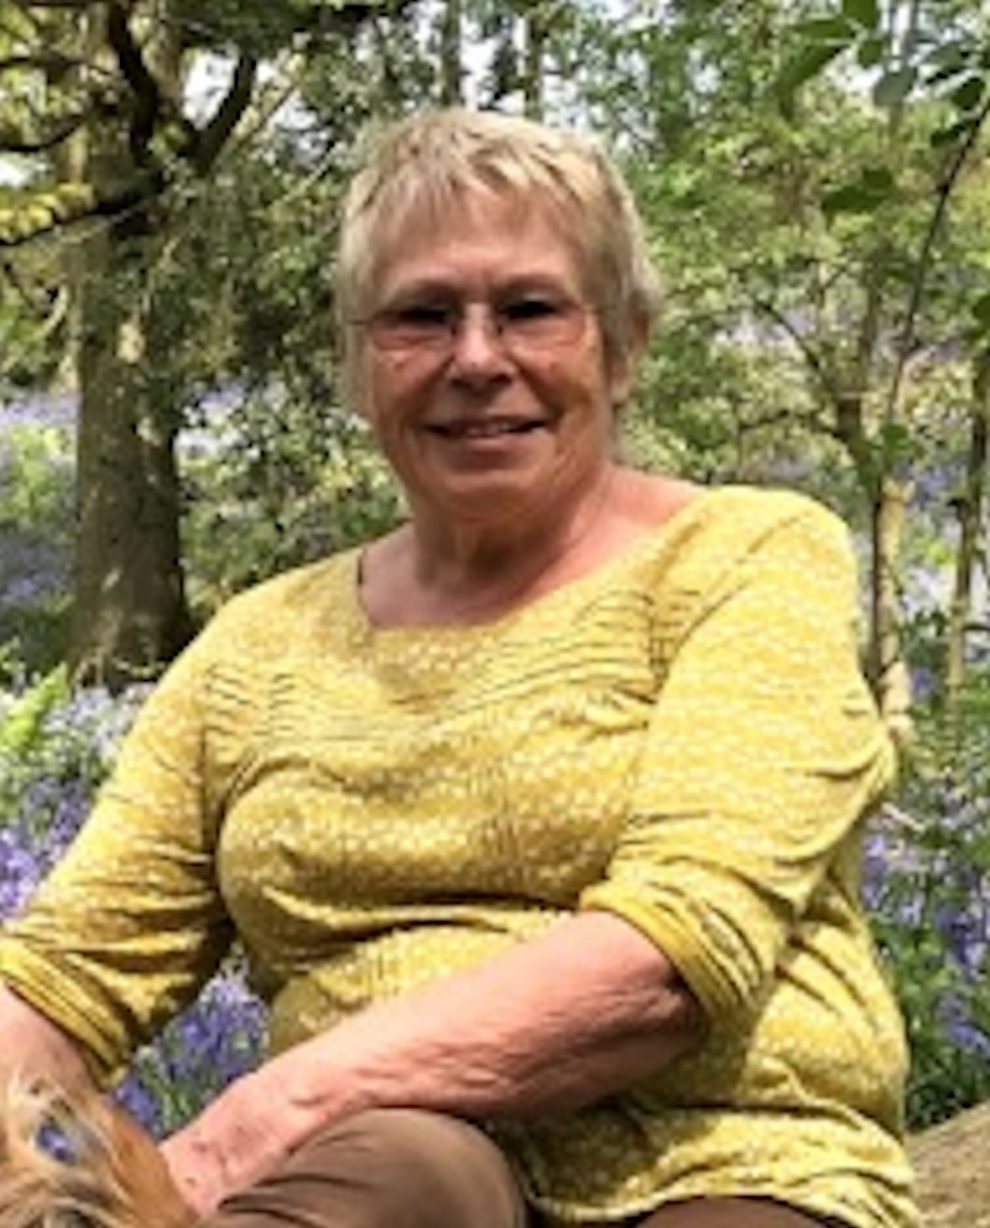 Missing Gerda Uelfer-Woods from Forest Row